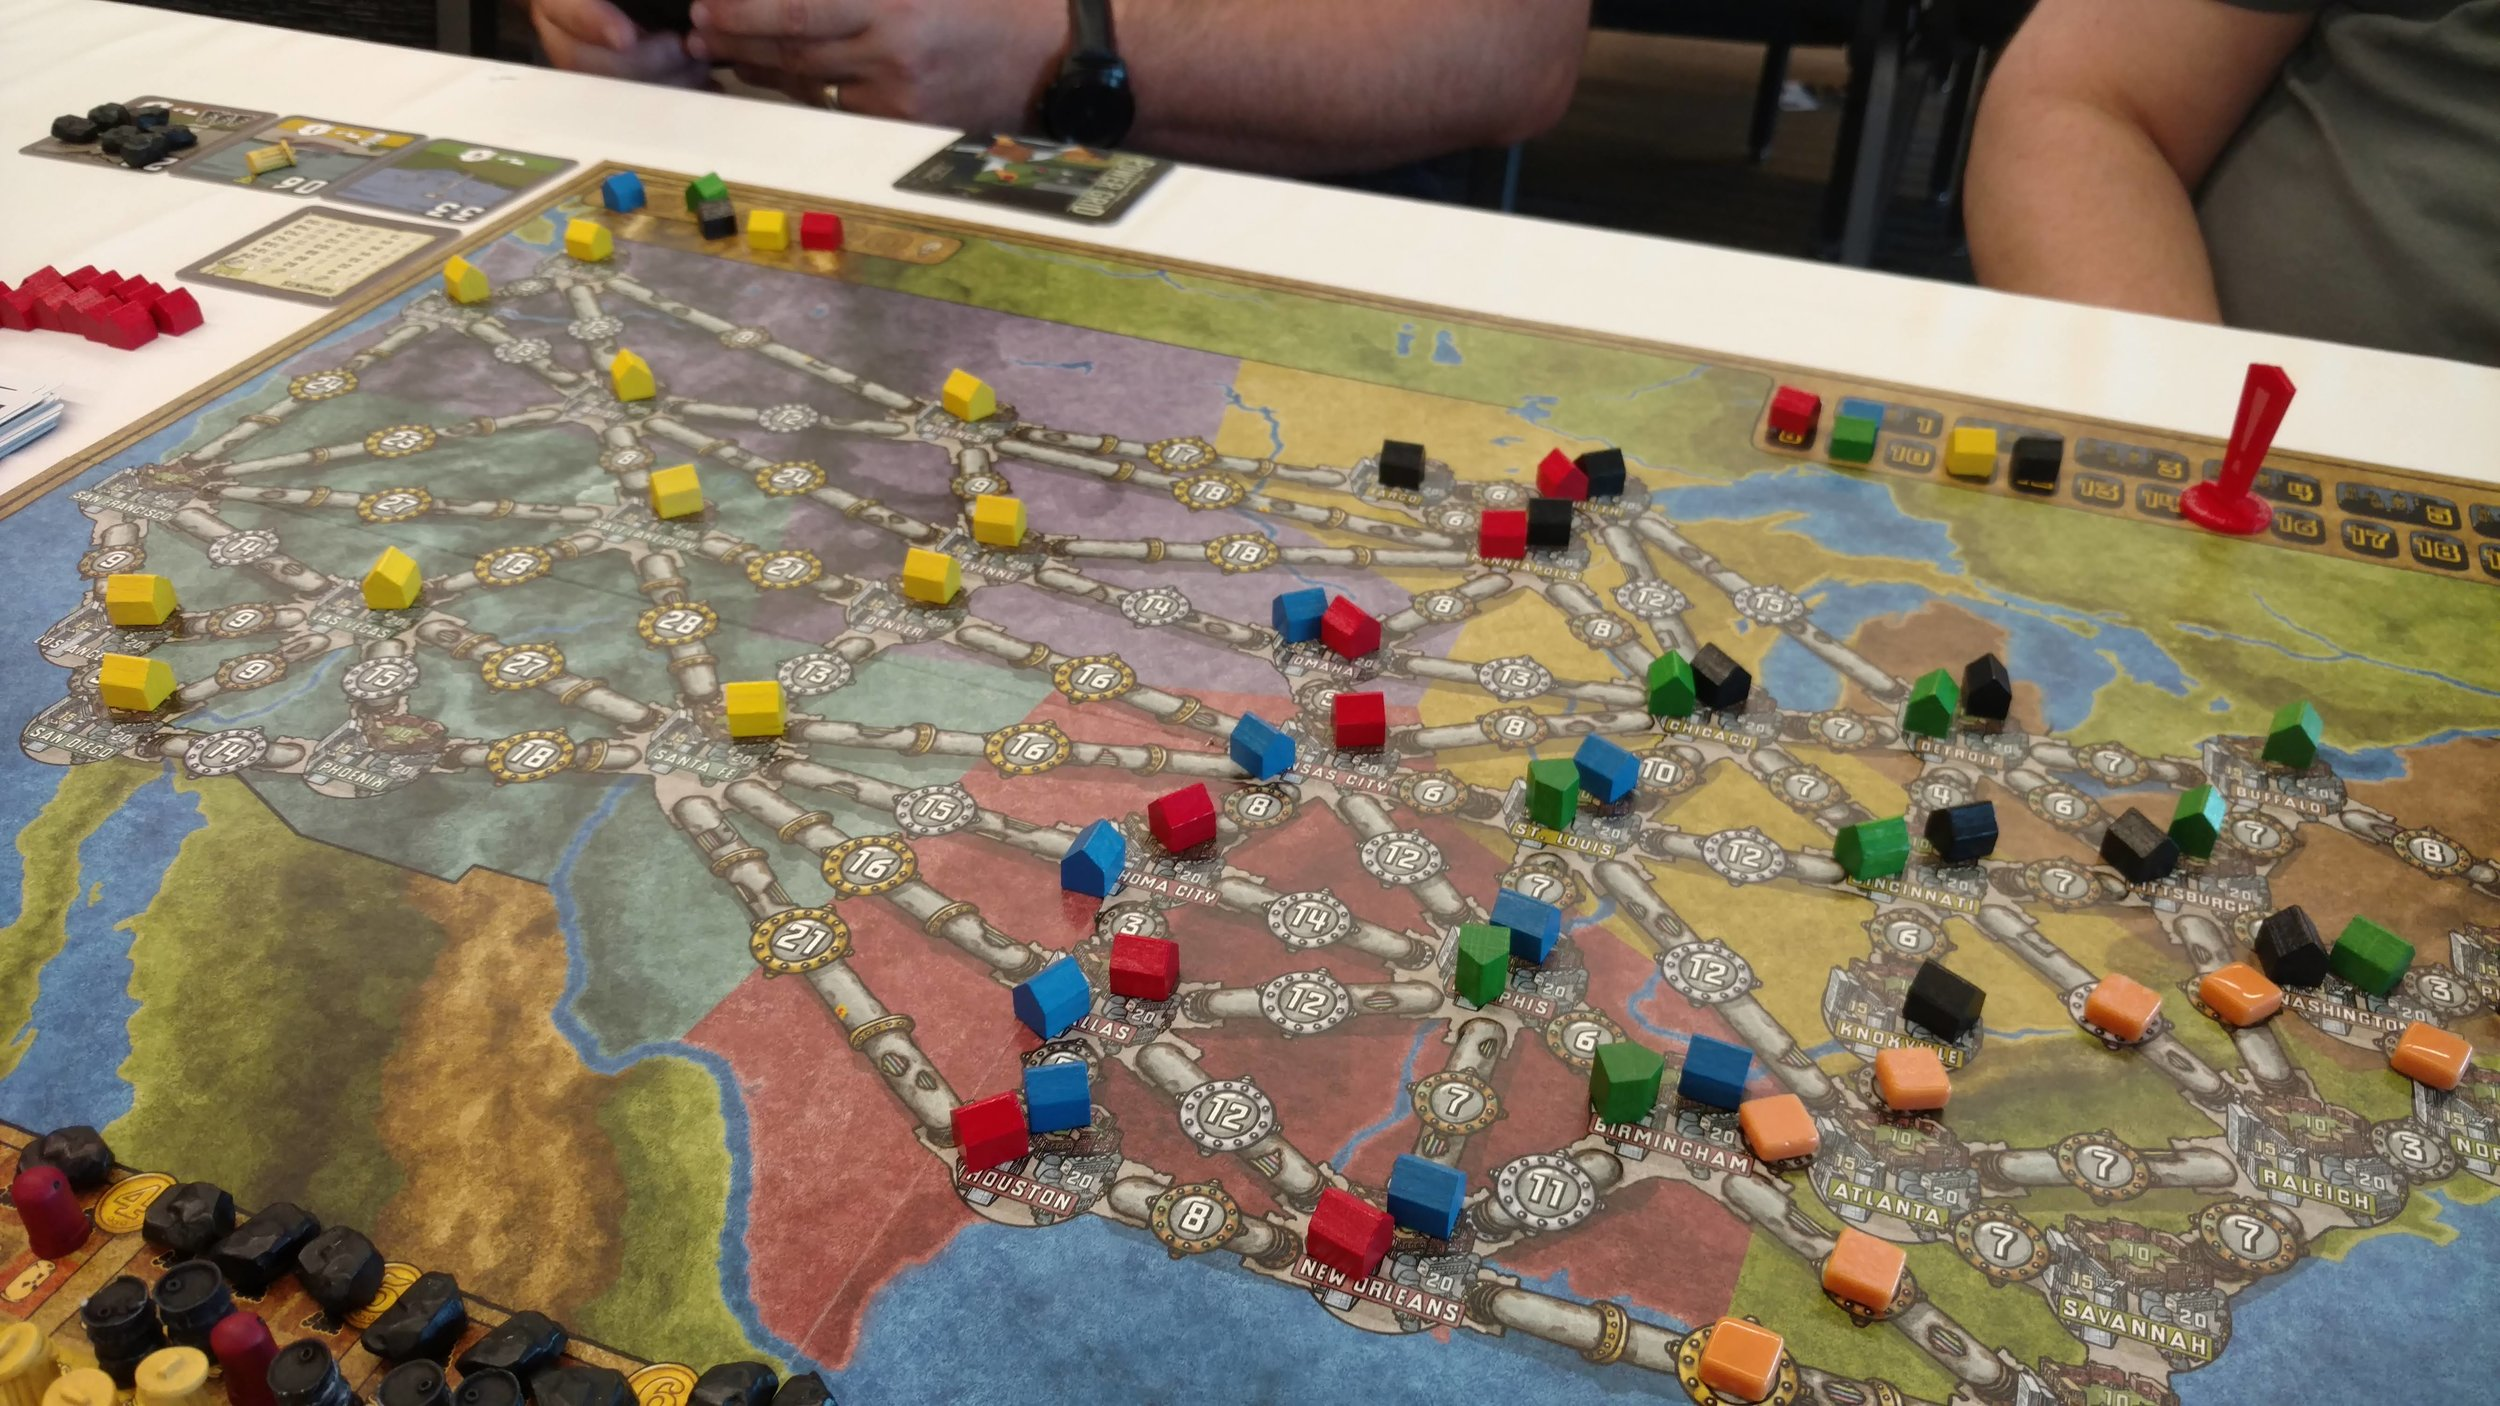 3. Power Grid - This was a favorite of both Eric and I. I think this was one of the few scheduled games I had at Origins. We added in the Detmers who were new. They mistakenly let me have the west coast unchallenged and I took the win but that doesn't really matter, does it?